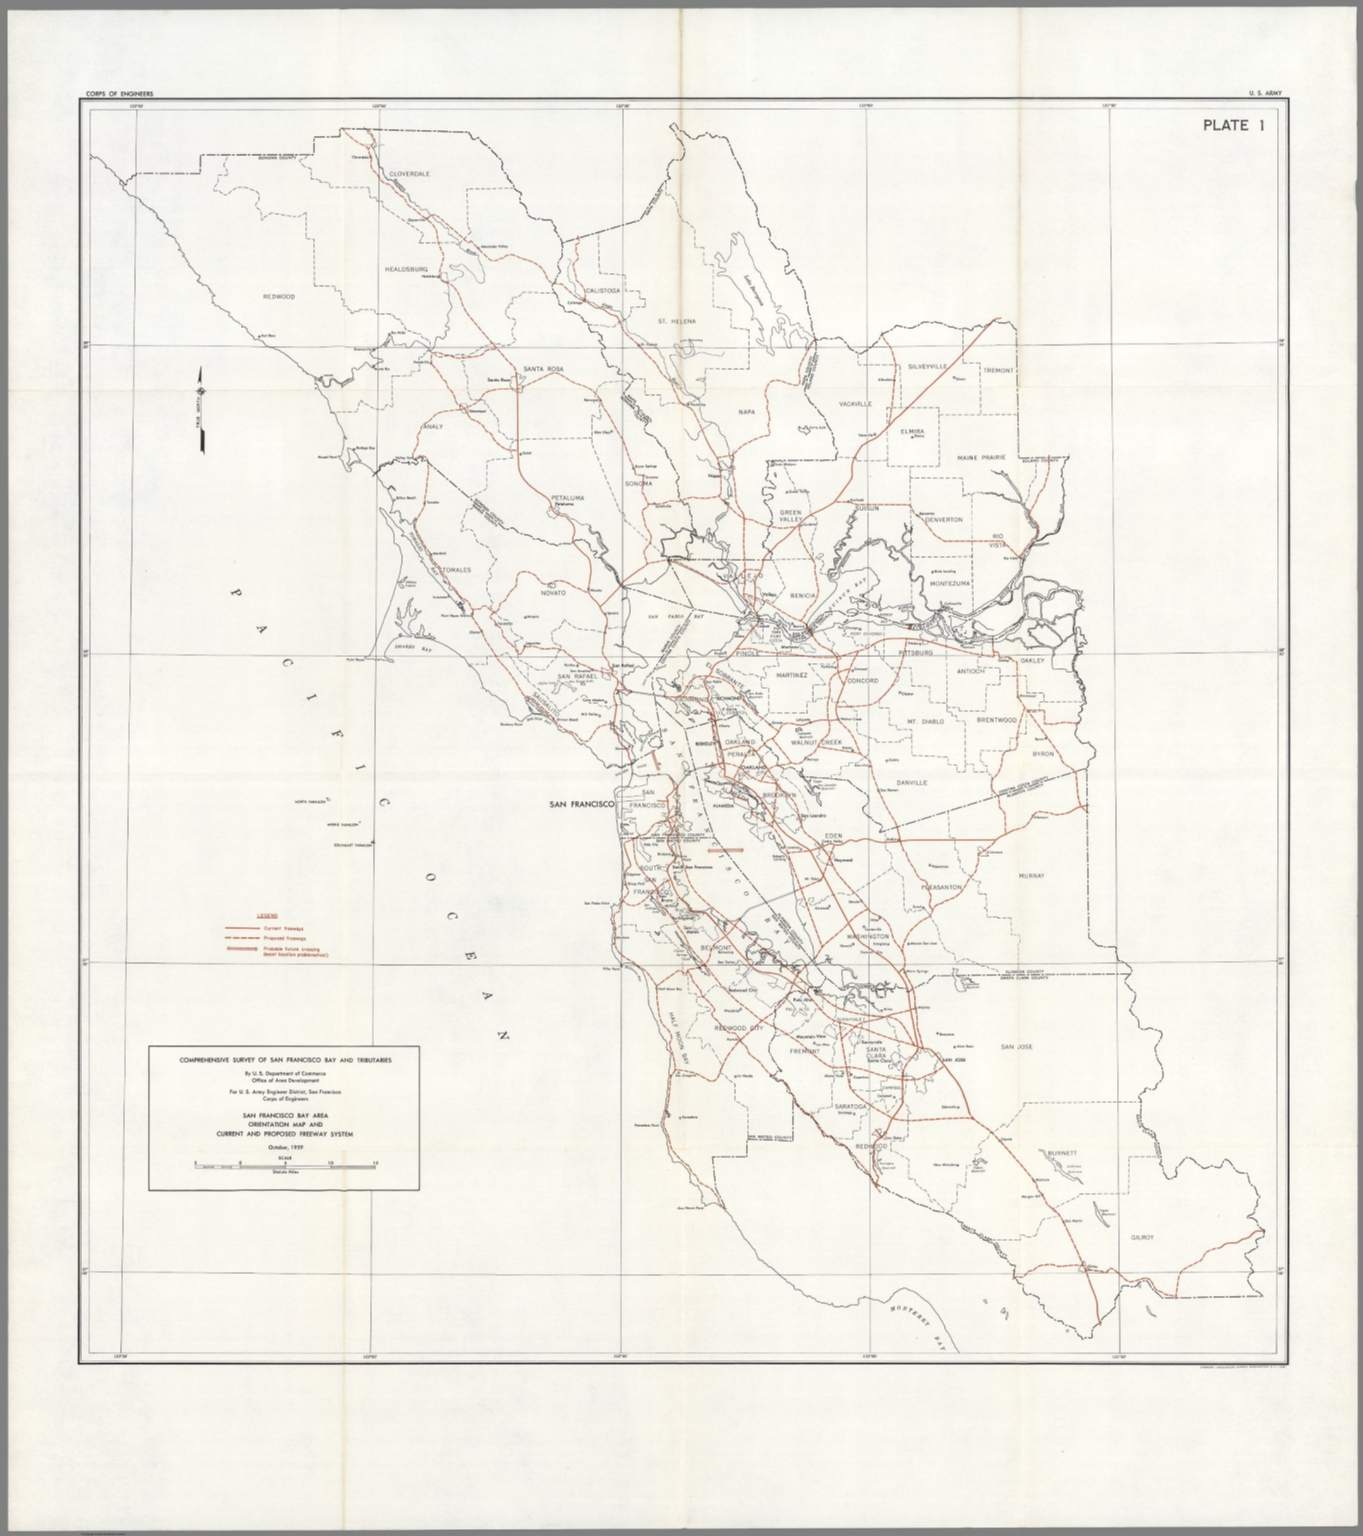 Plate 1 San Francisco Bay Area Orientation Map And Freeway System David Rumsey Historical Map Collection The san francisco bay area since the 1800s has drawn people from around the world seeking fortune a booming regional economy has led to record congestion on the bay area's freeways. david rumsey map collection